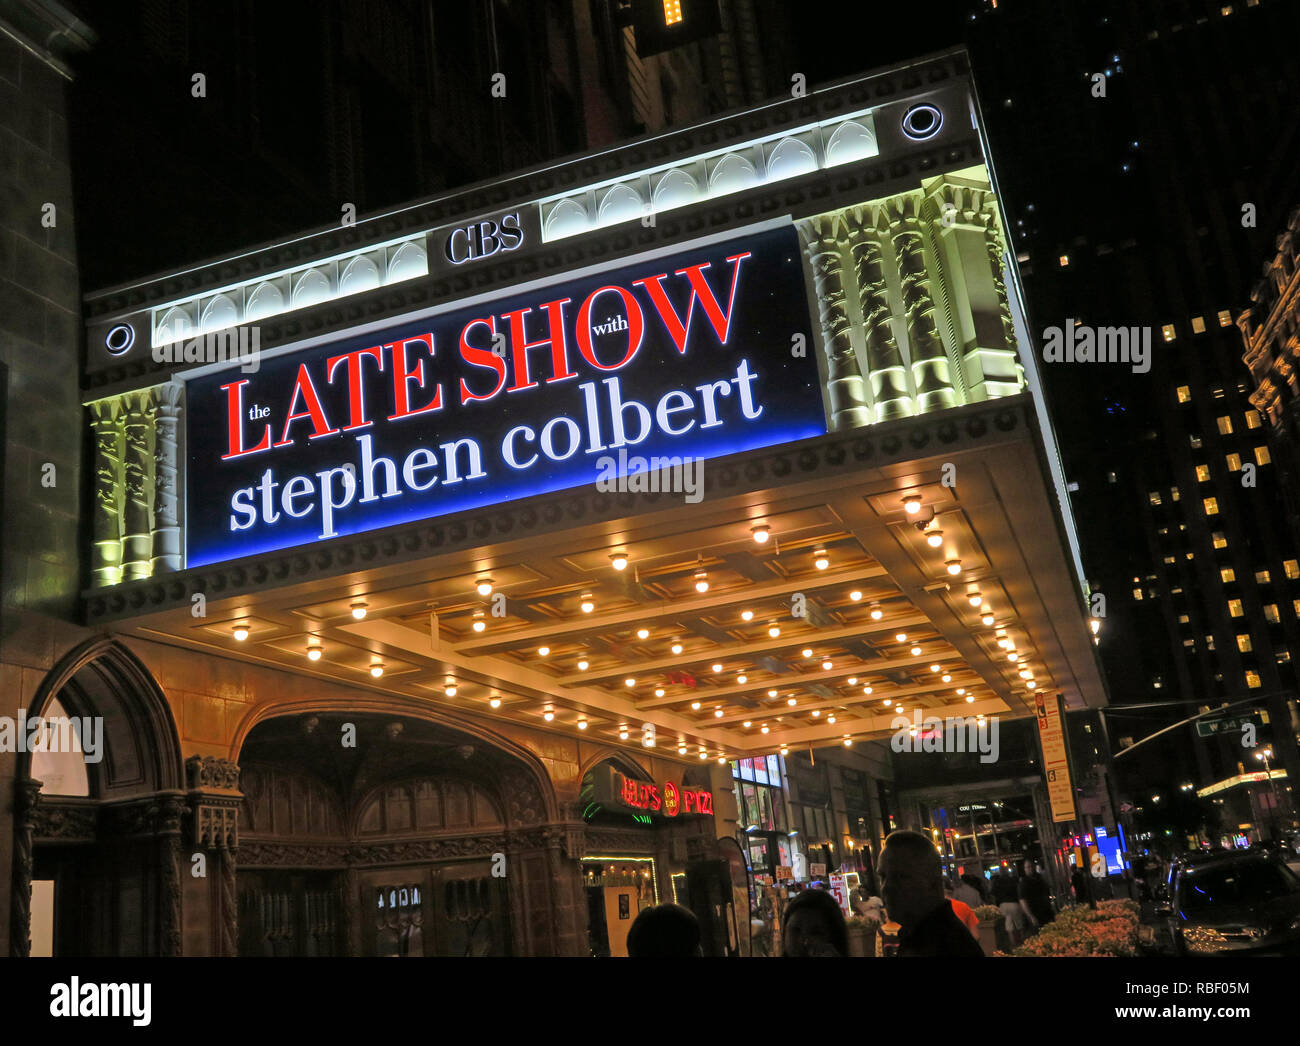 Late Show Stephen Colbert, 1697 Broadway, Ed Sullivan Theater, New York City, NY 10019-5904, USA - Stock Image